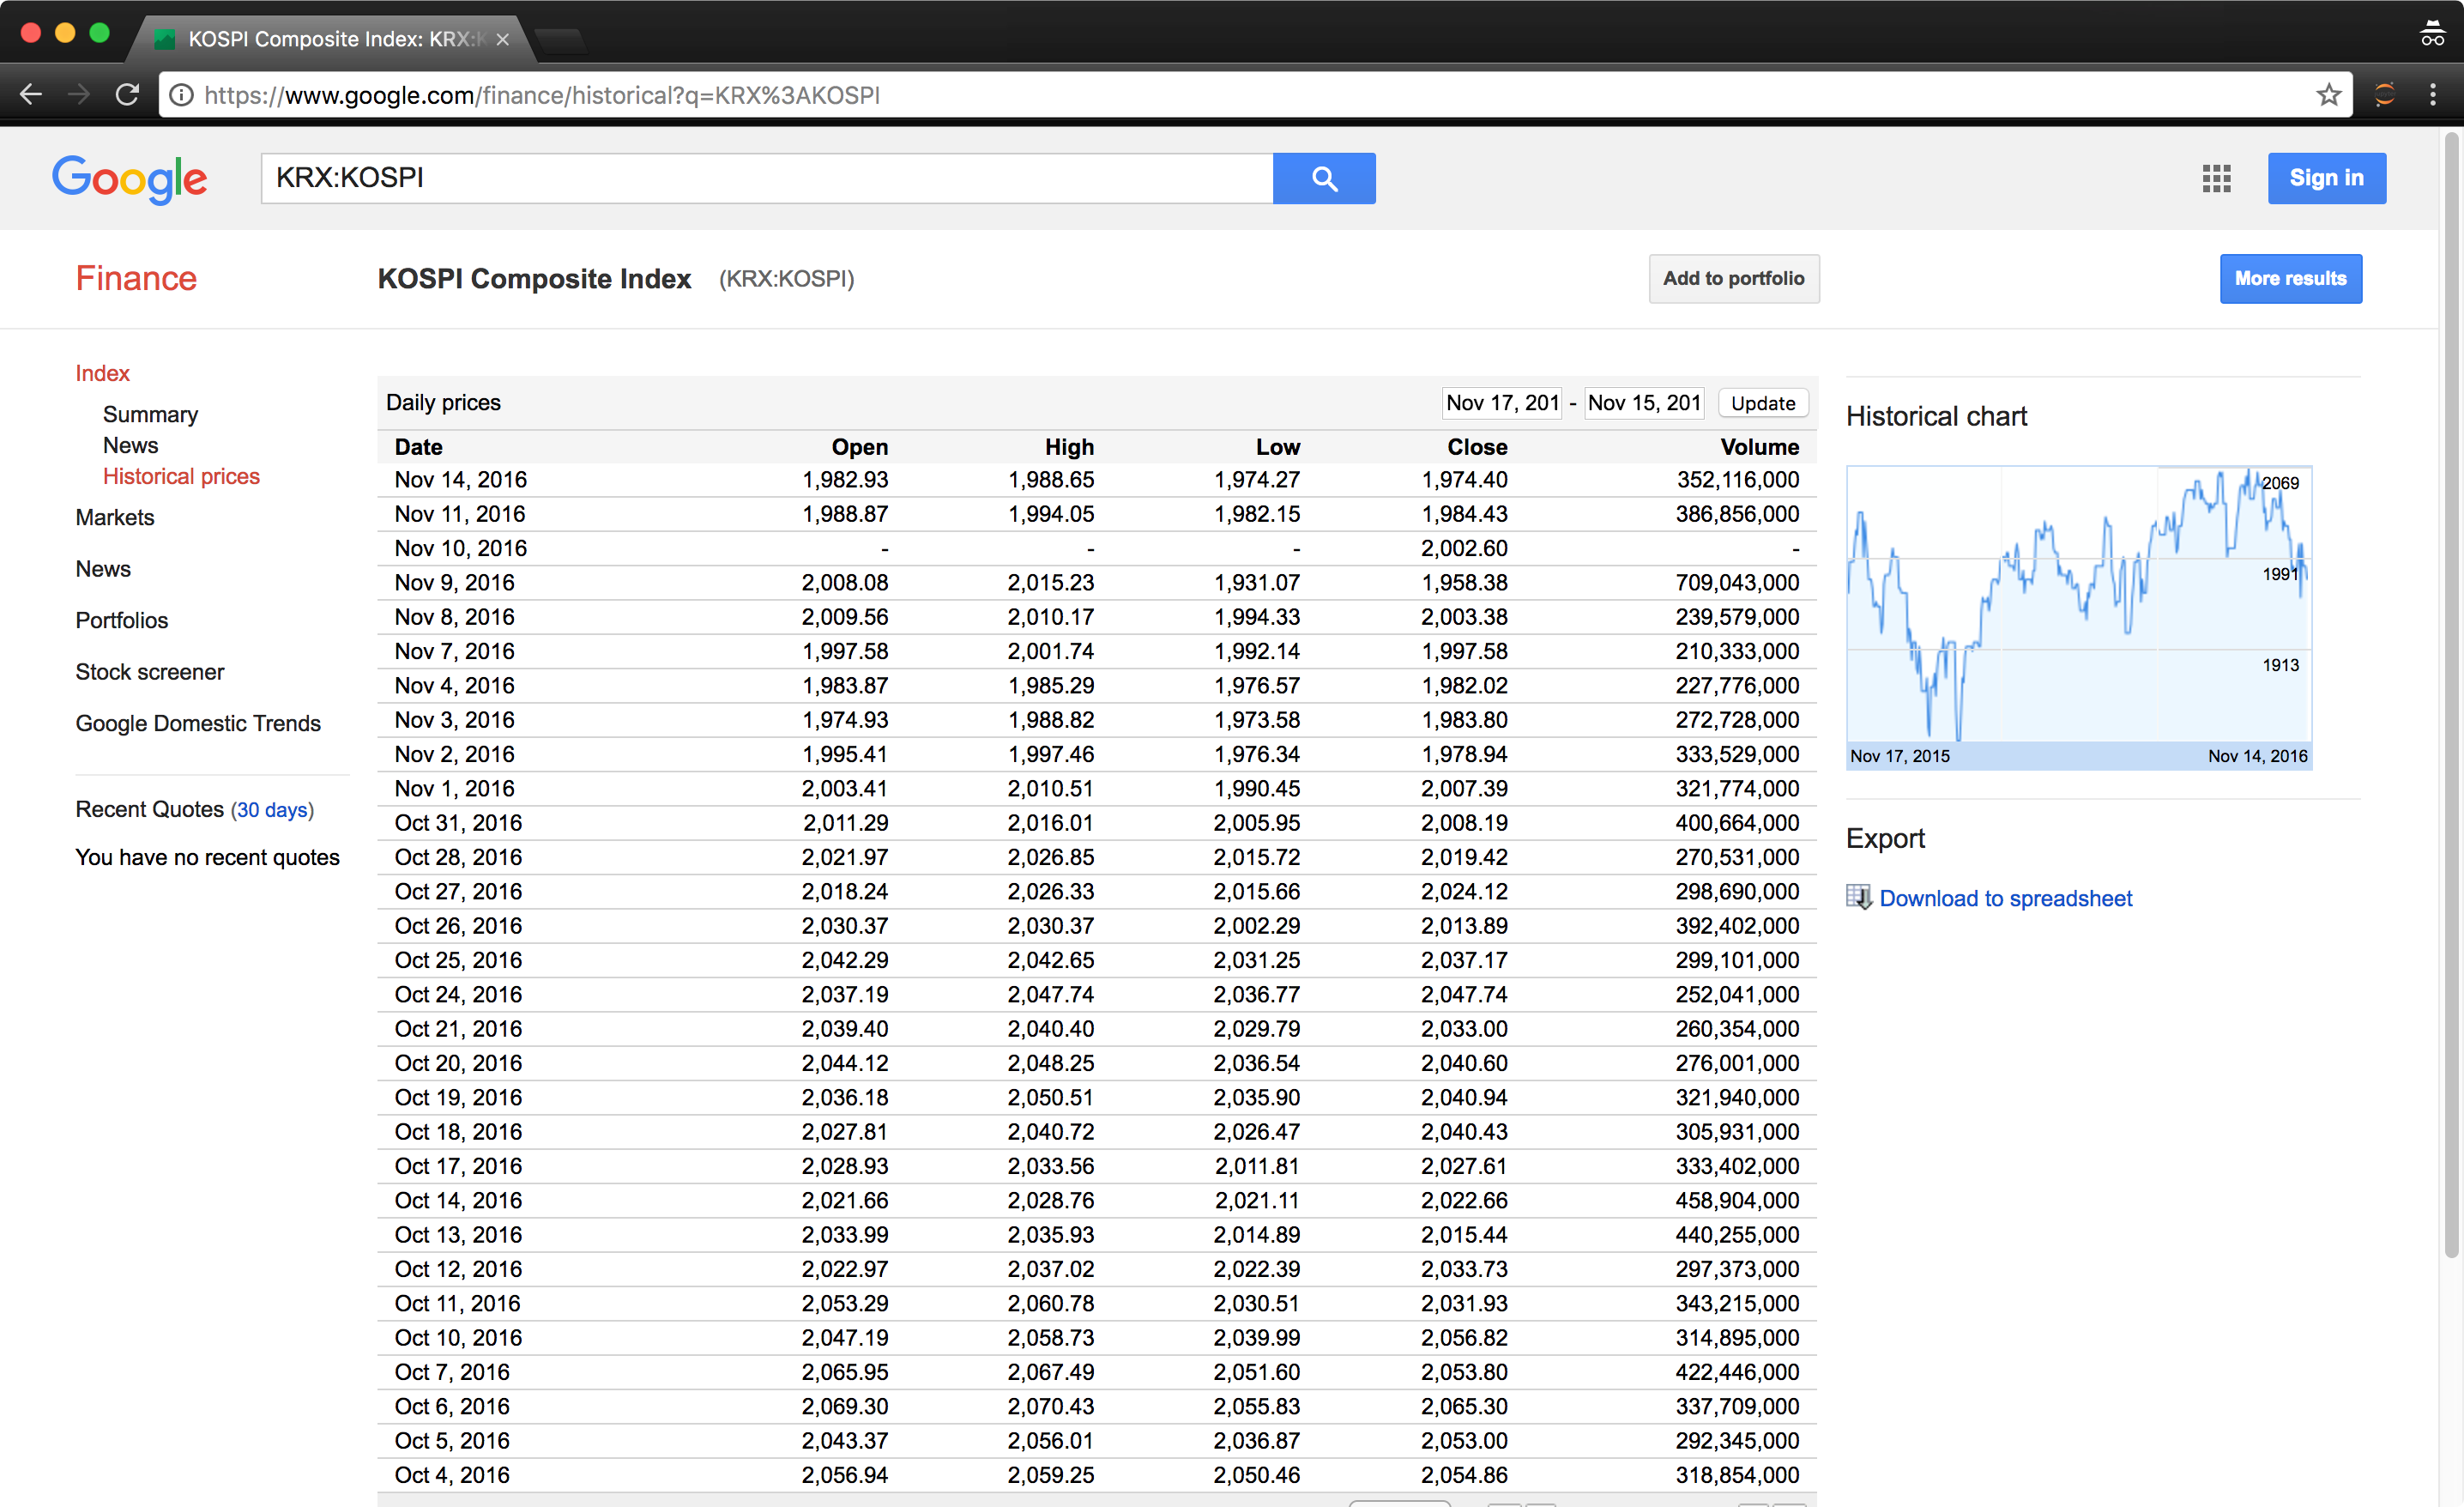 Google Finance KOSPI